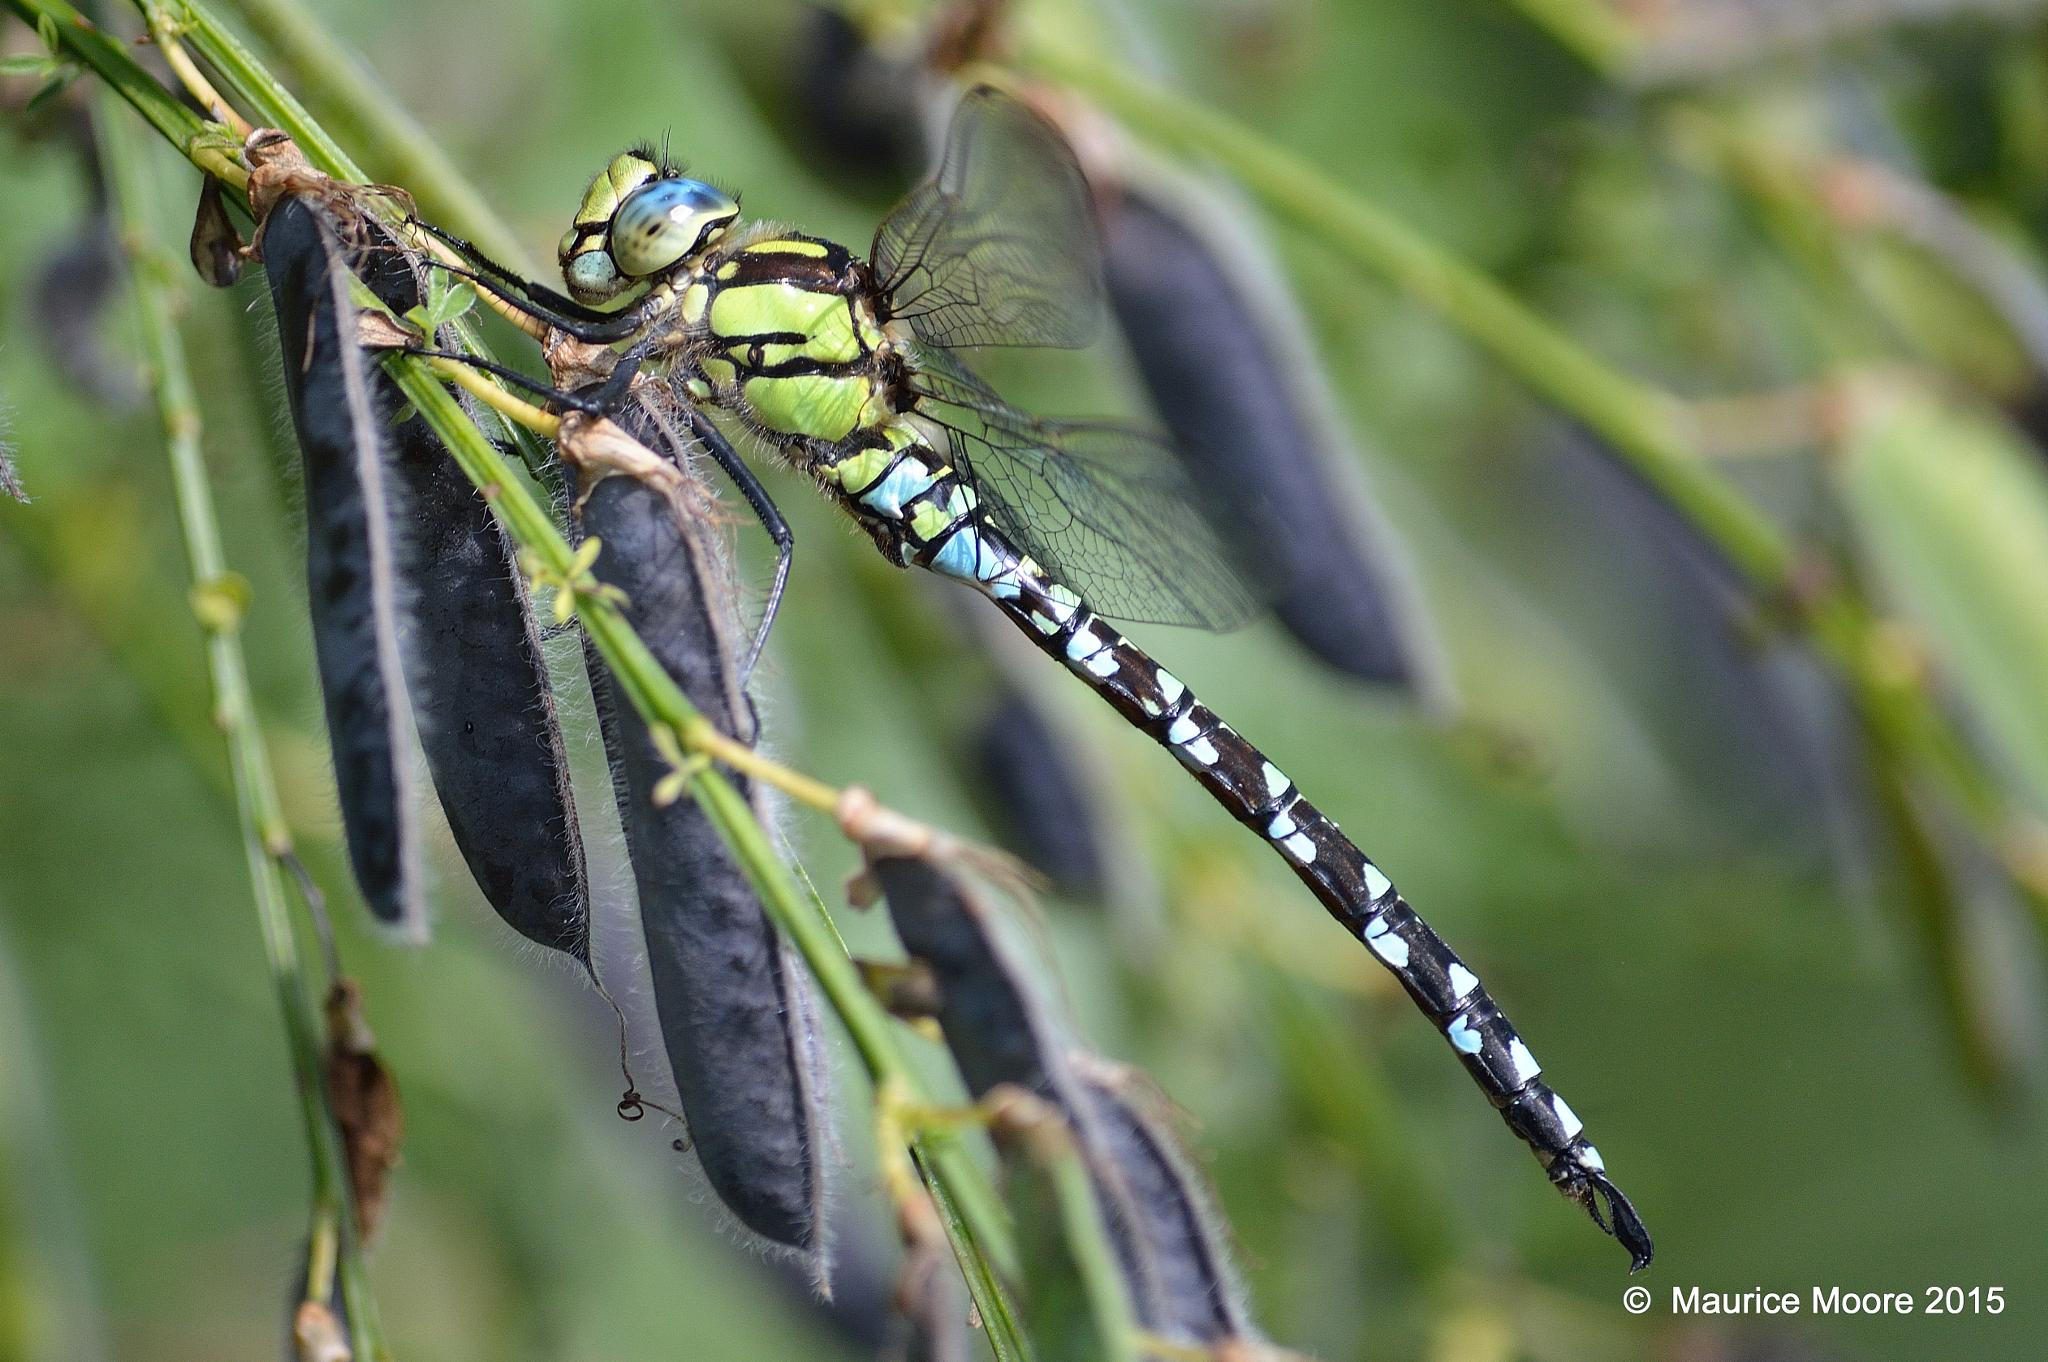 Southern Hawker Dragonfly by Maurice Moore